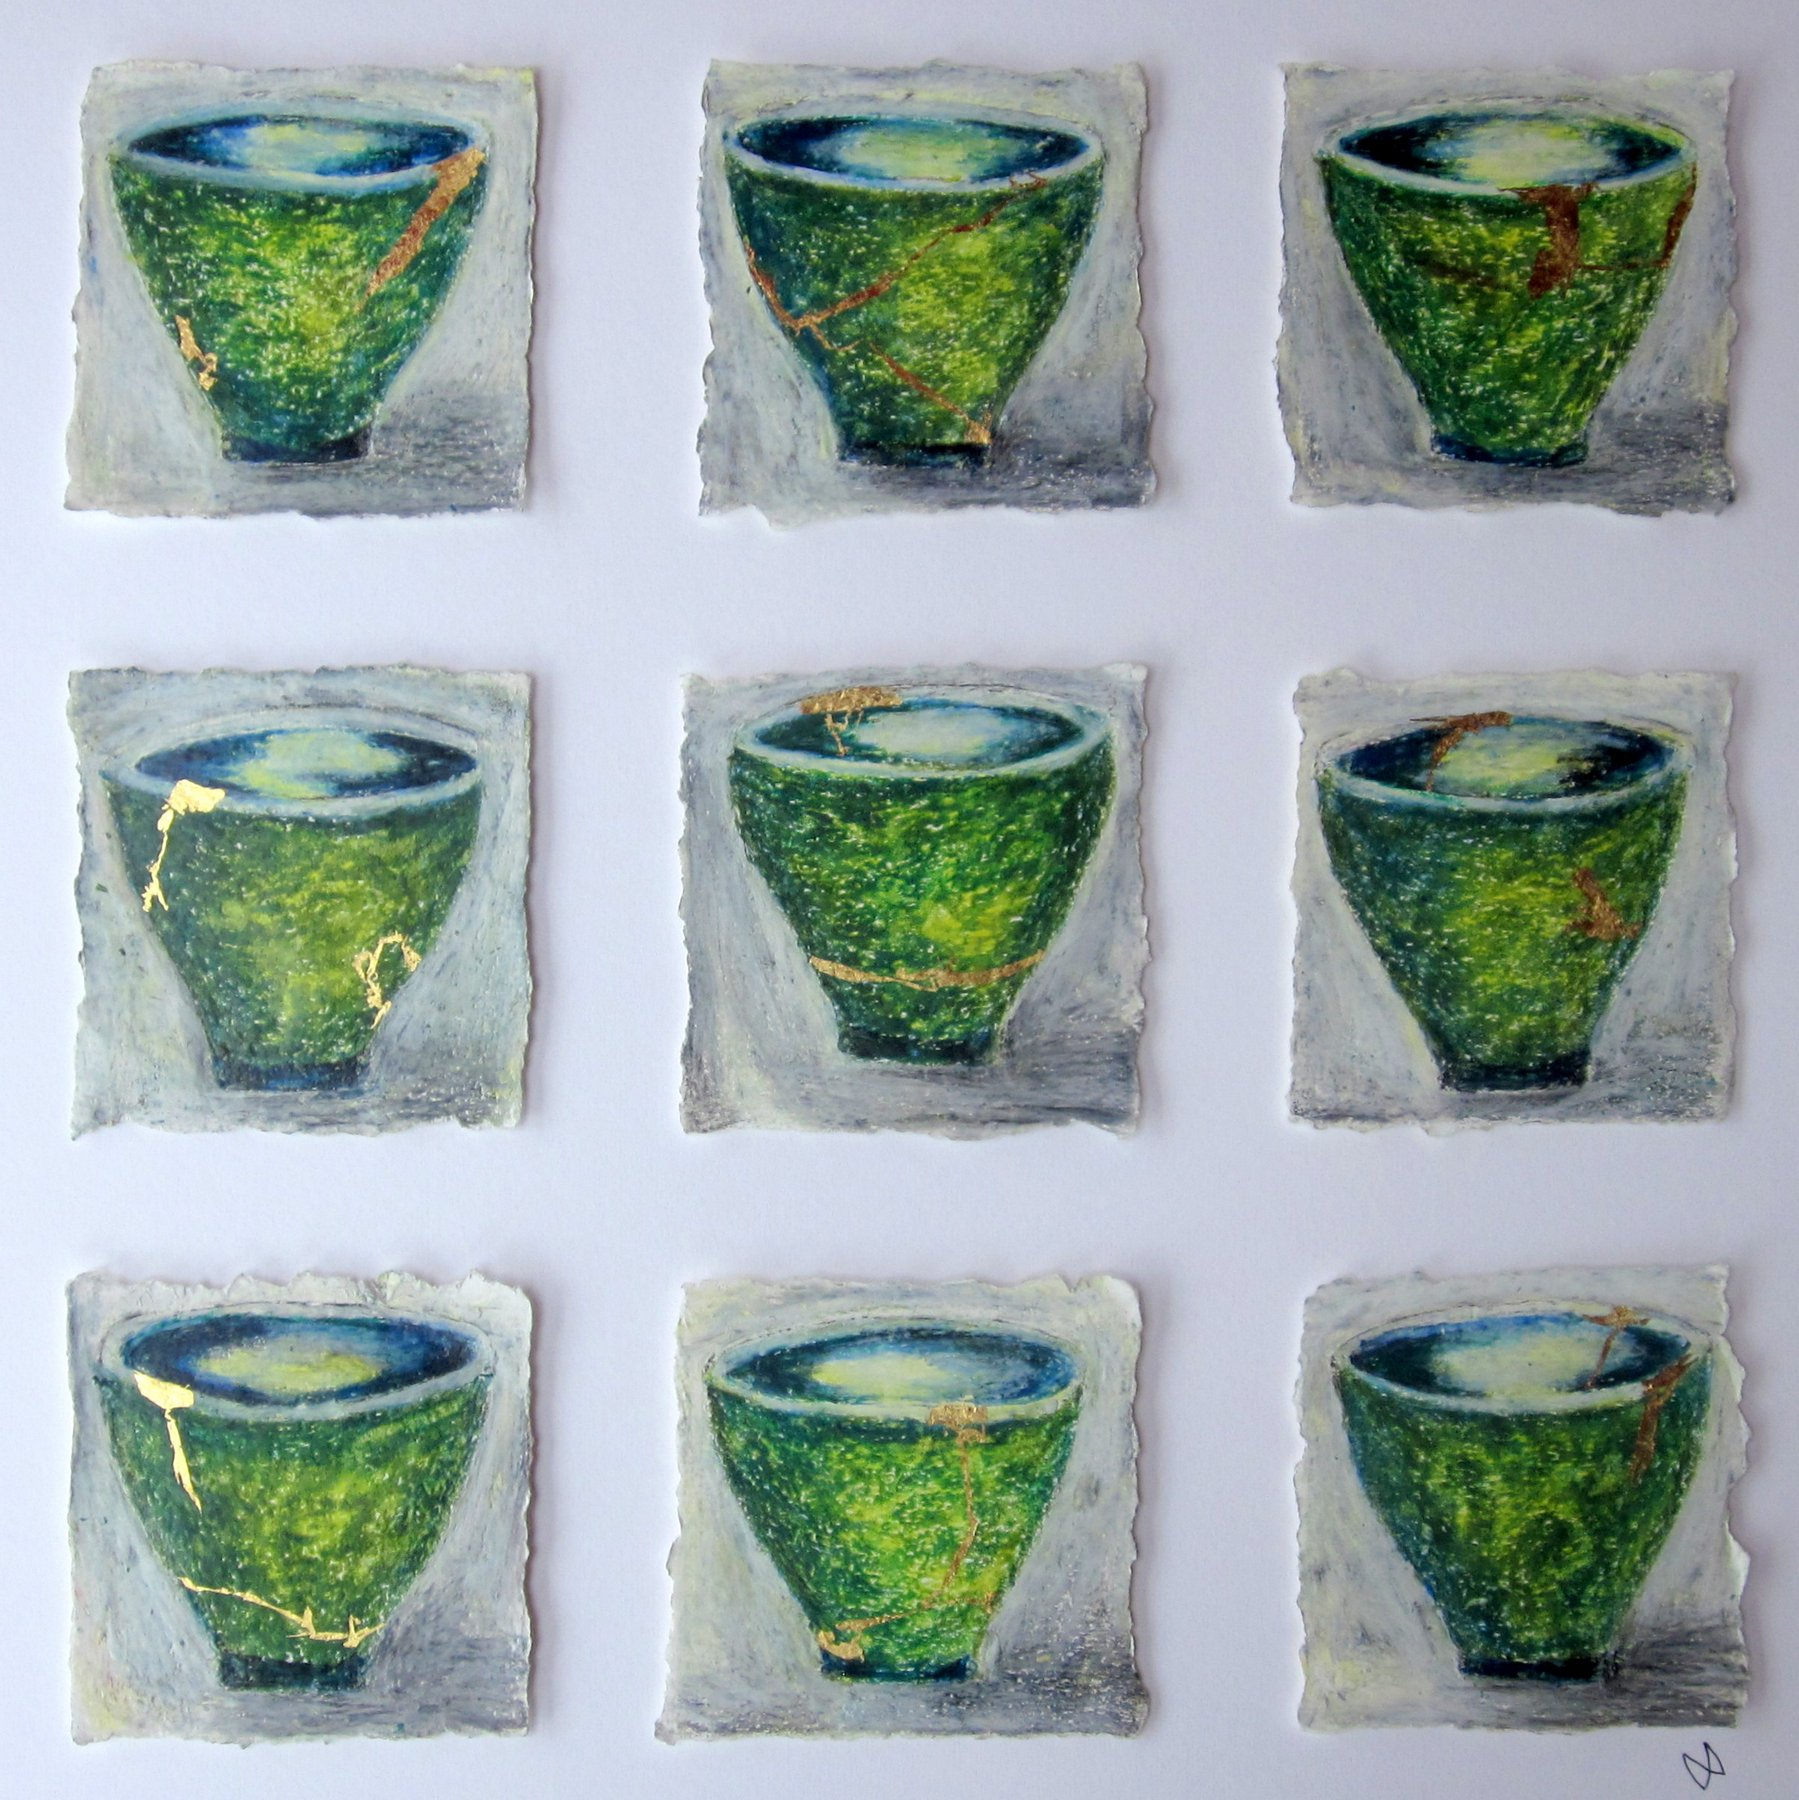 Nine green kintsugi tea bowls with gold repair